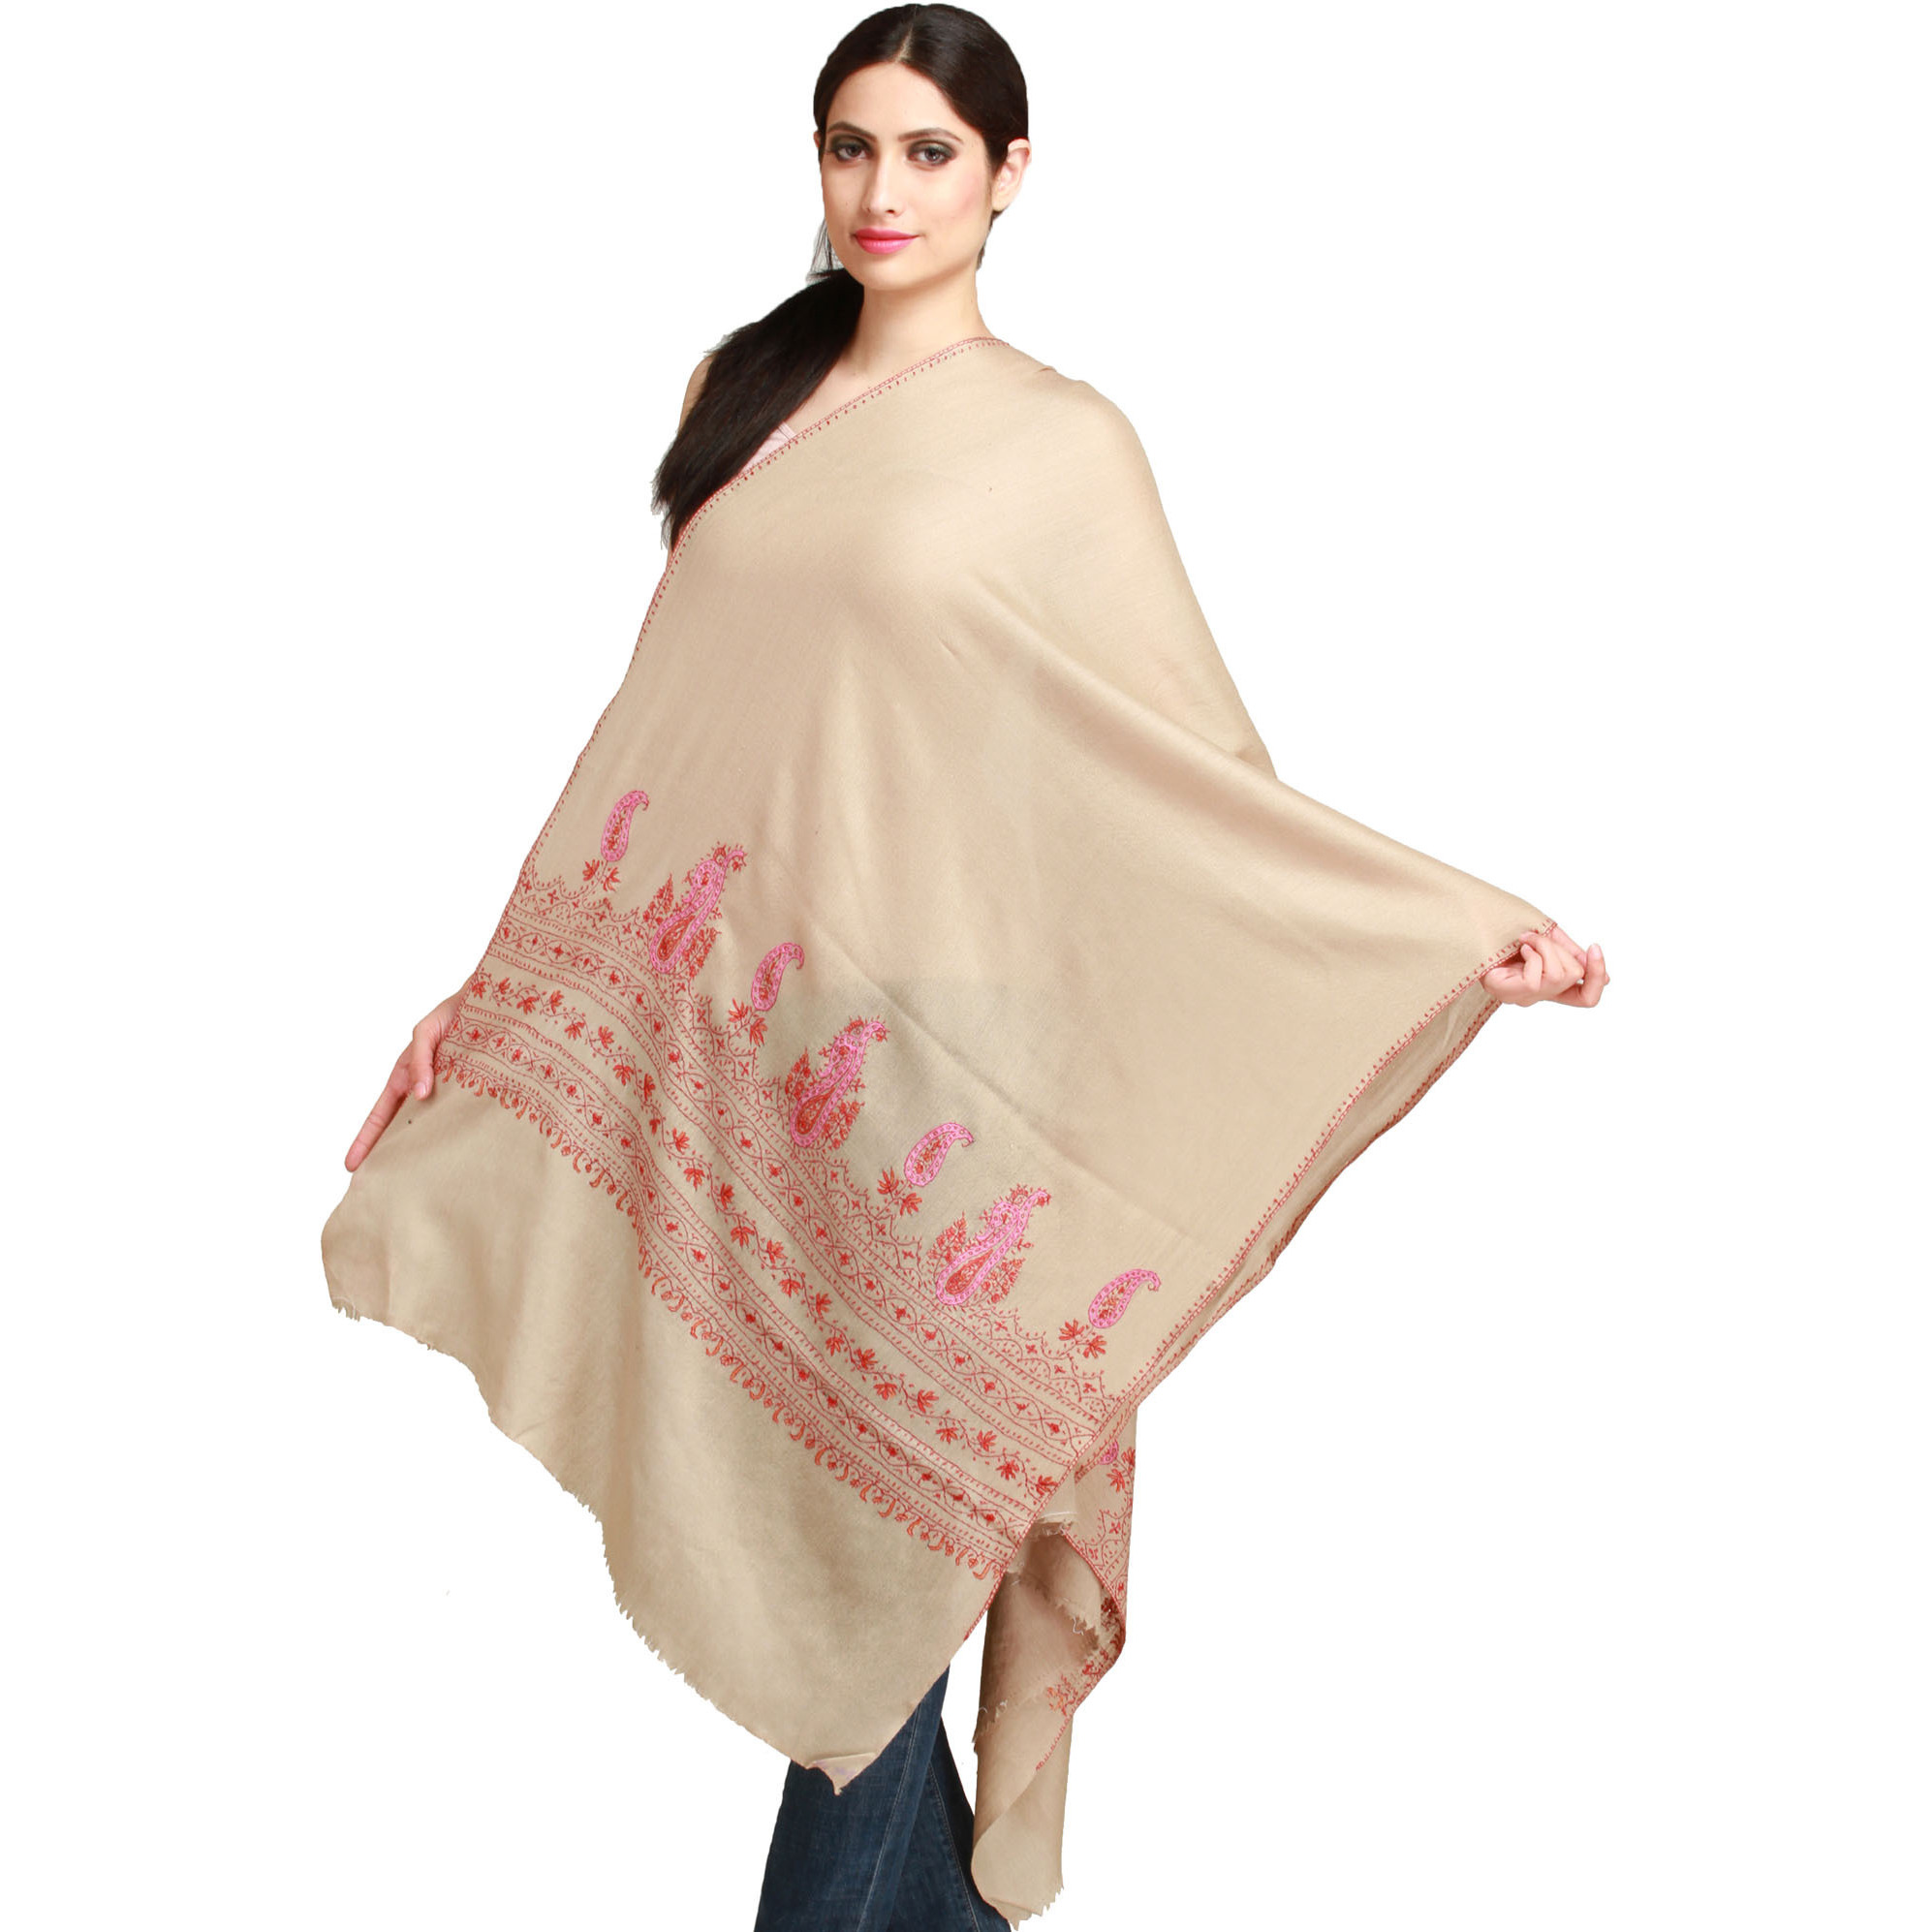 Oyster-Gray Stole from Kashmir with Sozni Hand-Embroidery on Border